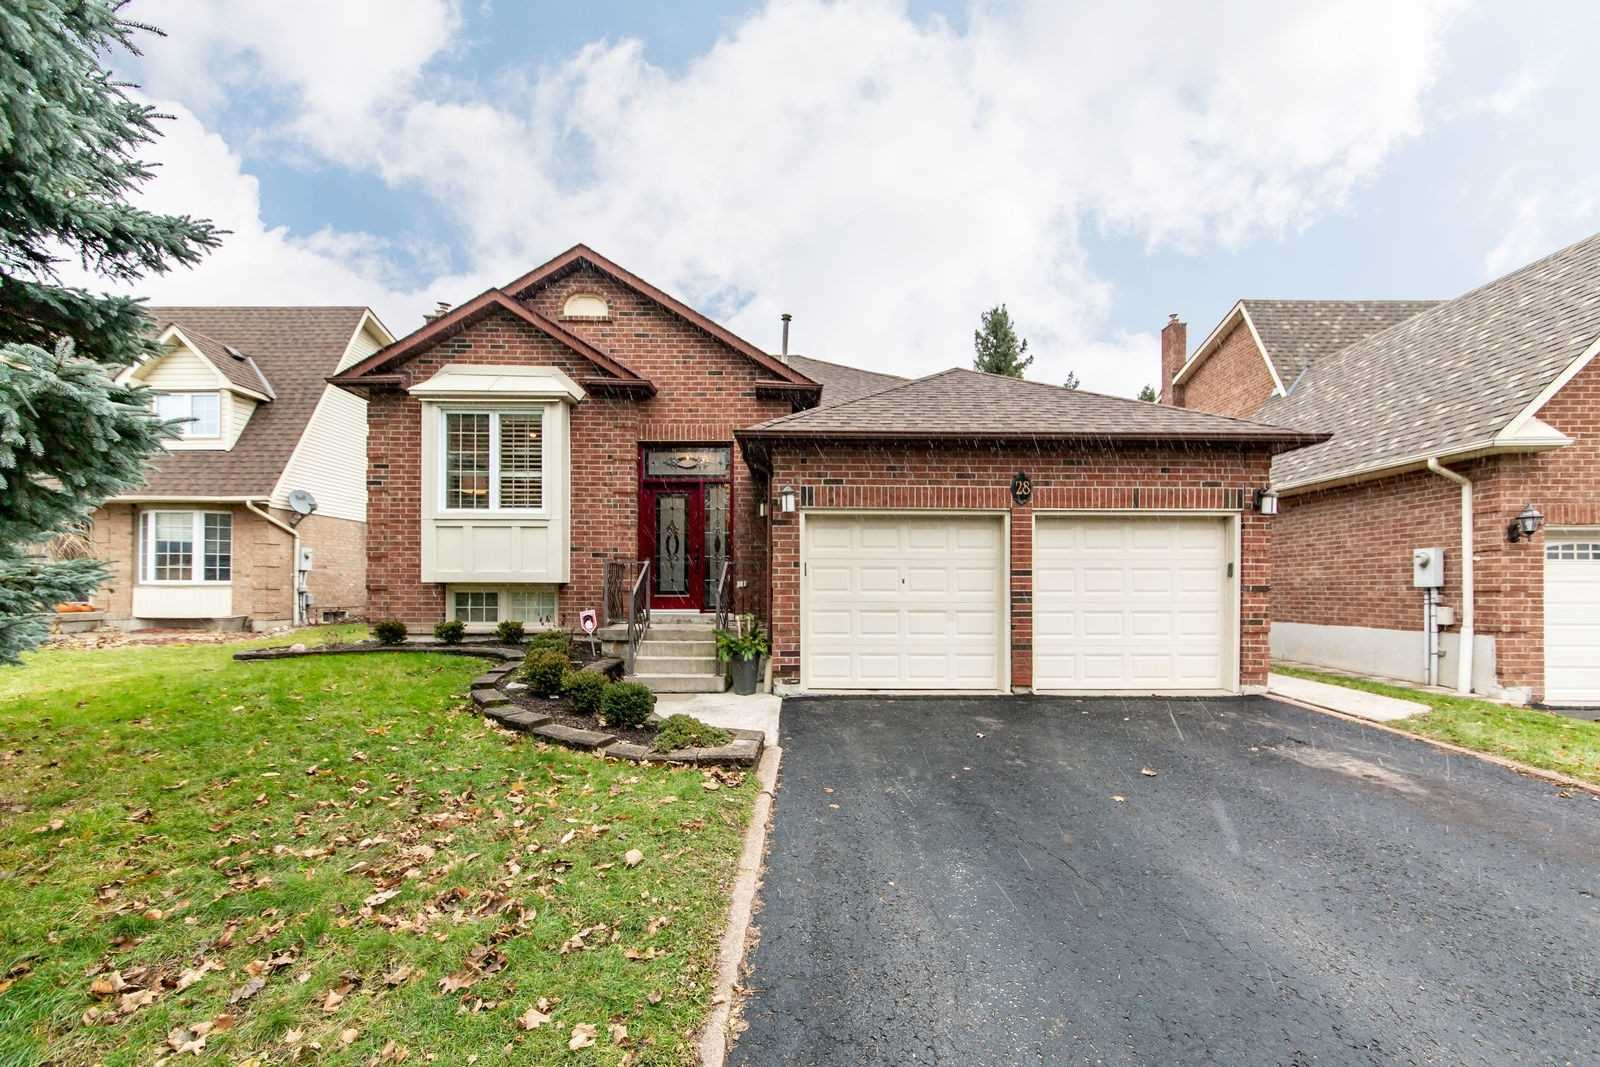 House for sale at 28 Chatsworth Crescent Whitby Ontario - MLS: E4314079